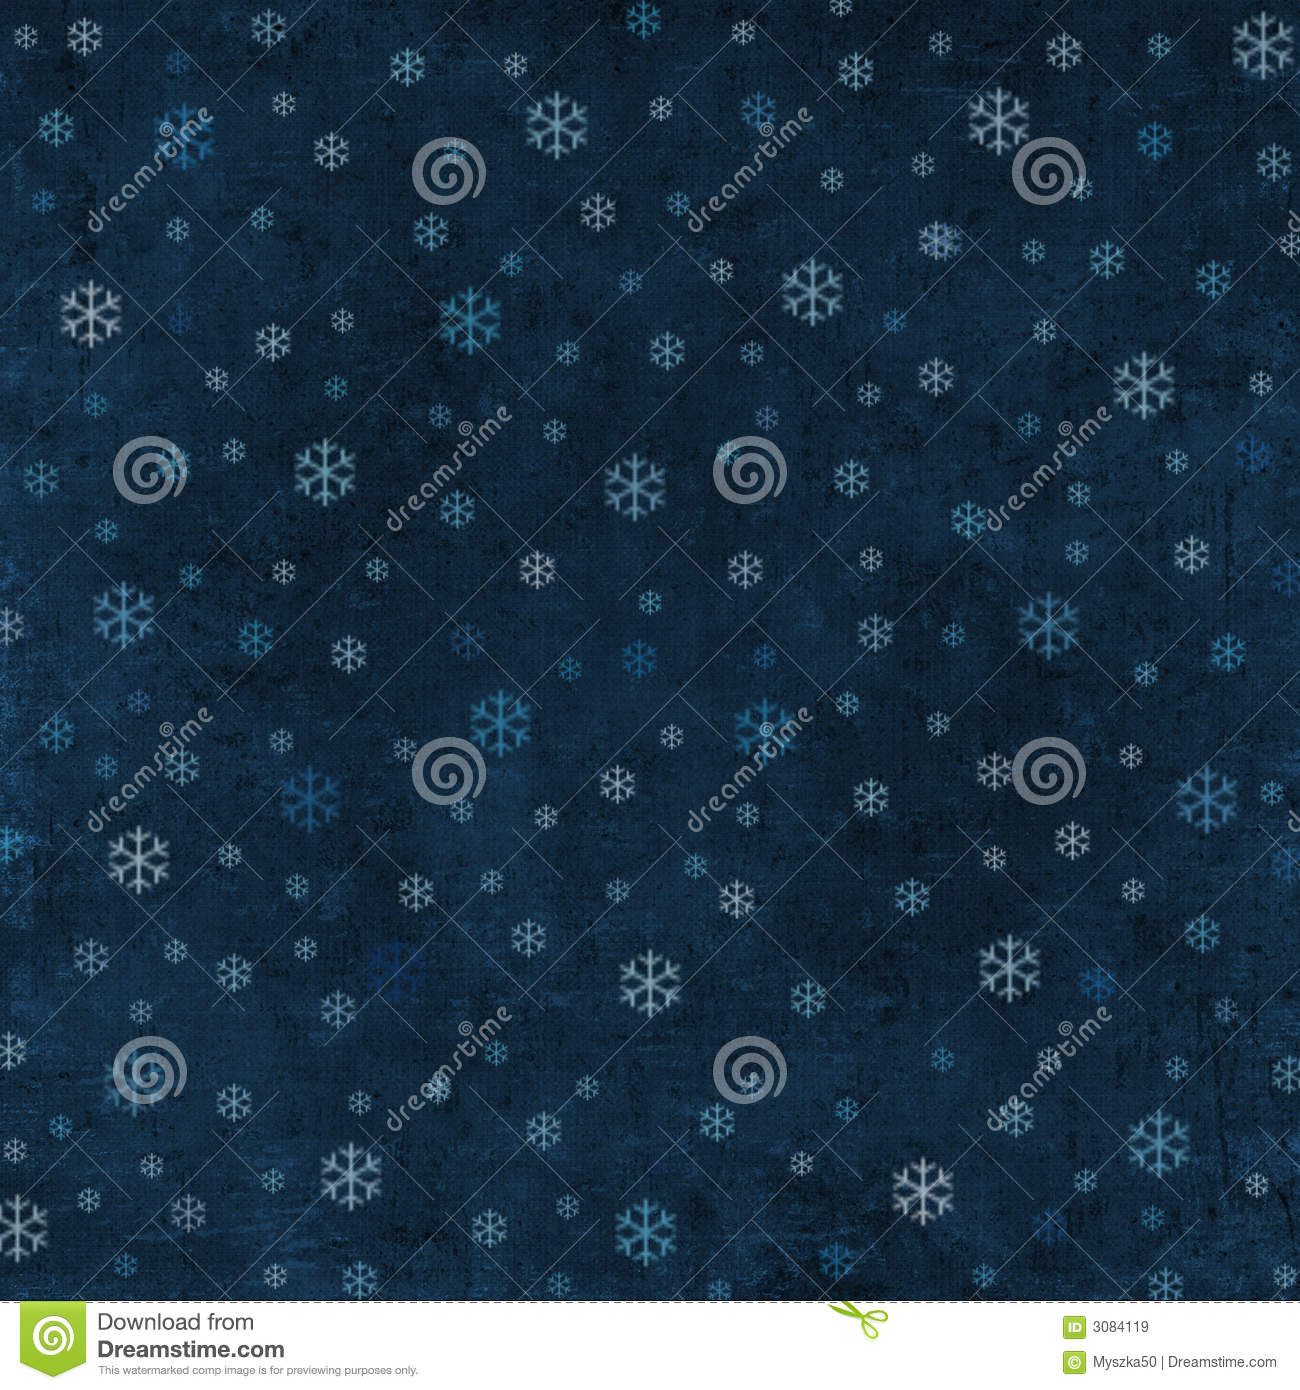 Grungy winter background